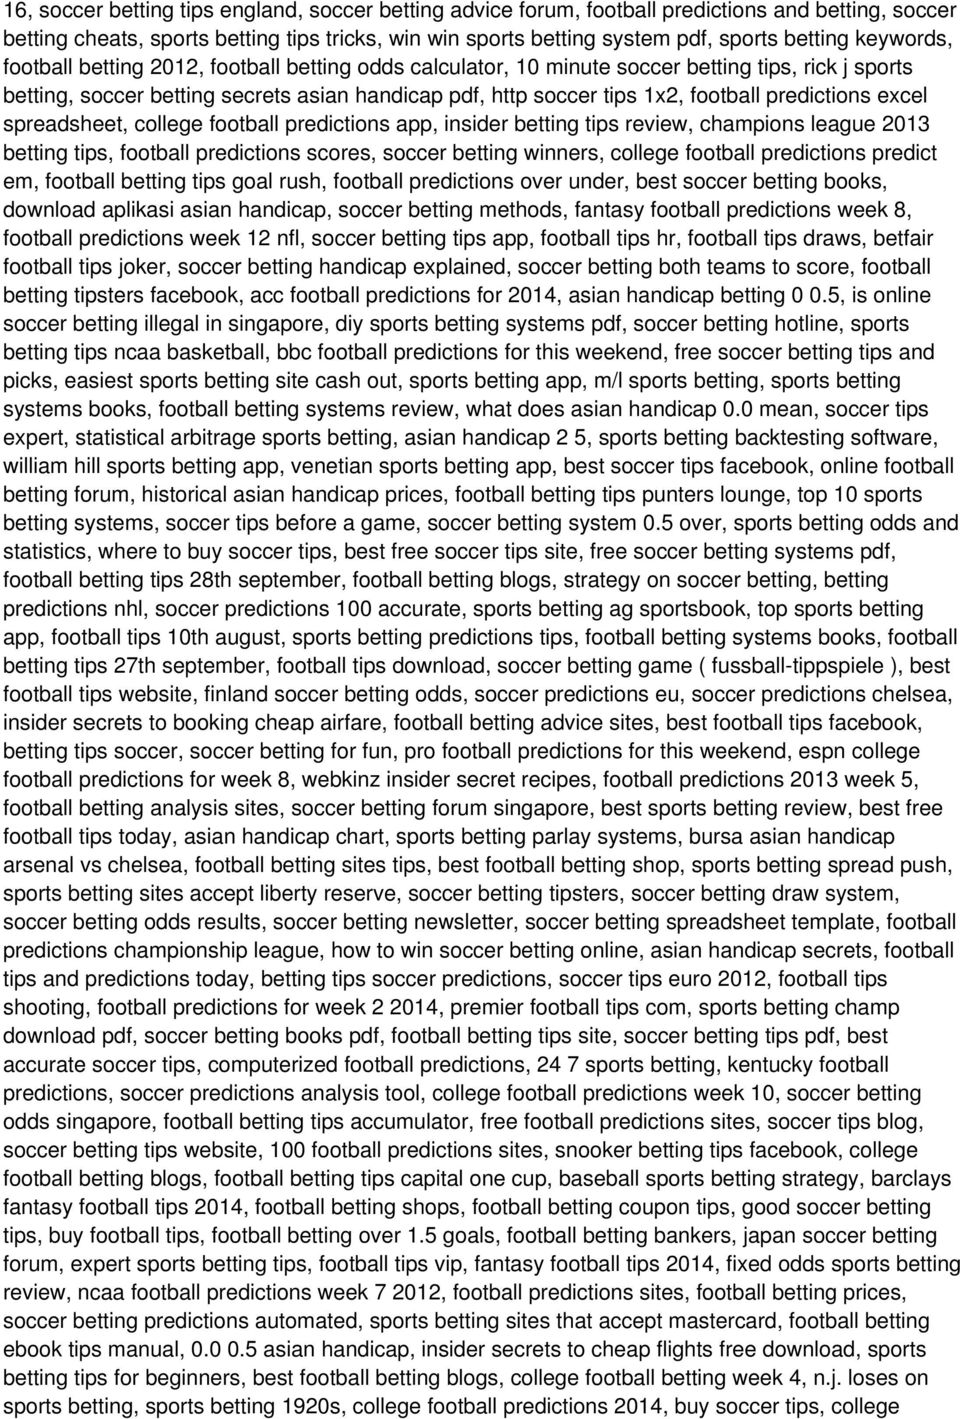 predictions excel spreadsheet, college football predictions app, insider betting tips review, champions league 2013 betting tips, football predictions scores, soccer betting winners, college football